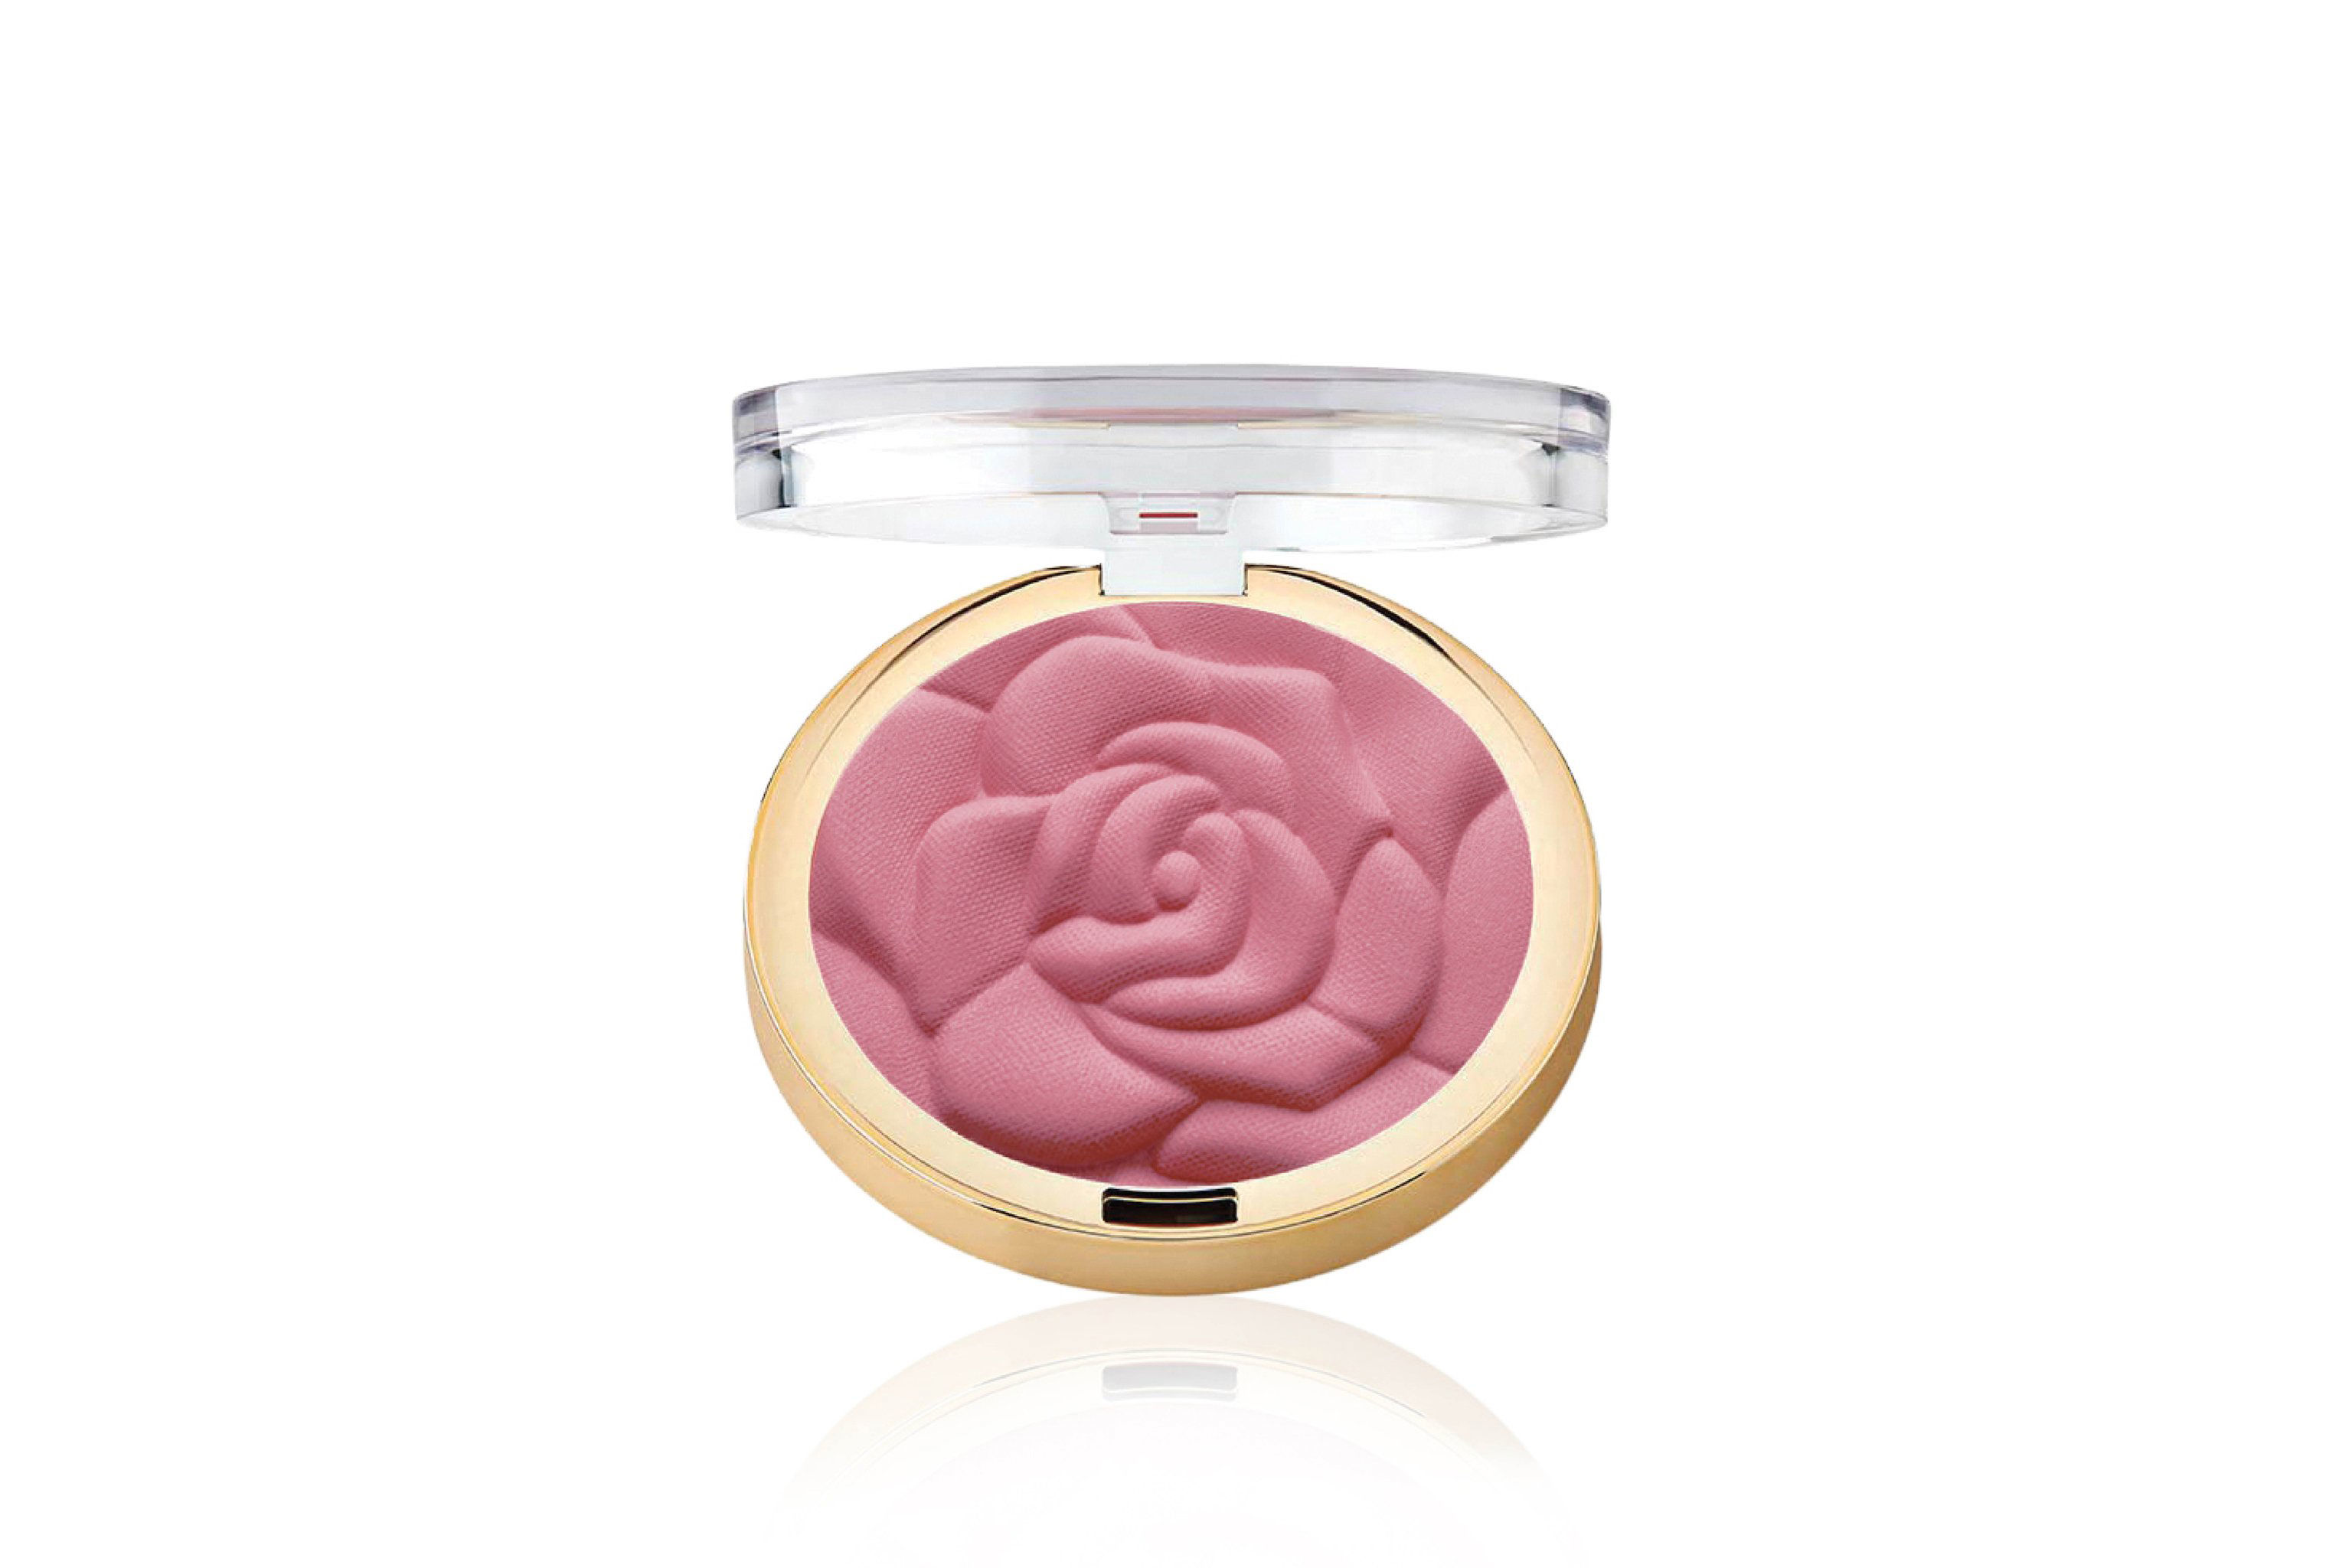 The $6 Blush That's Been Saved Over 29K Times On Pinterest